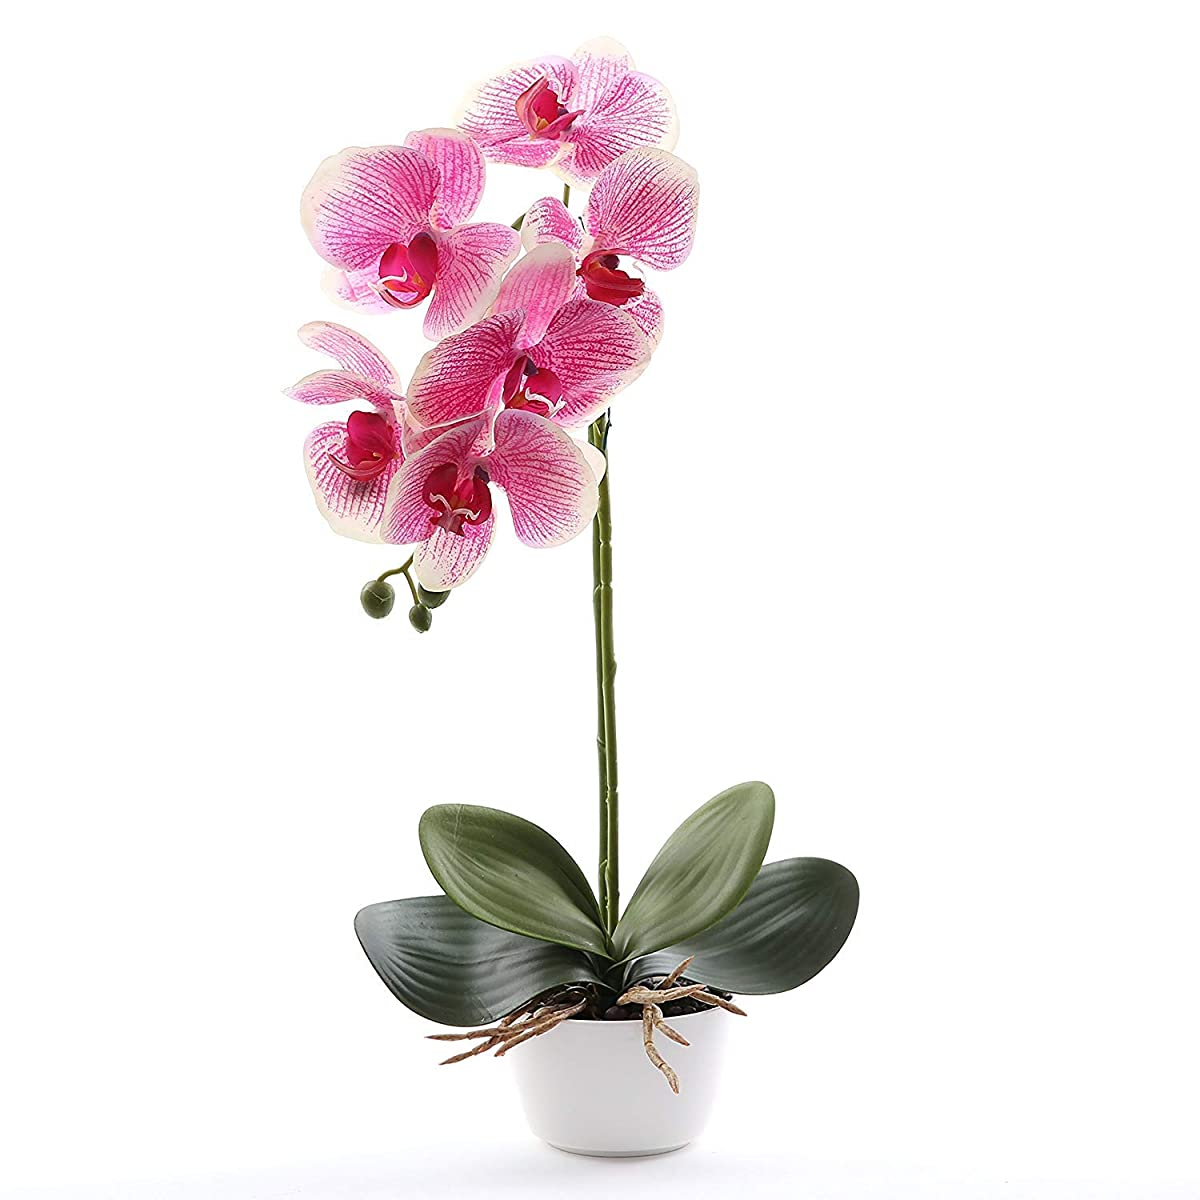 Livilan Silk Phalaenopsis Flower Arrangement, Artificial Orchid Flowers with White Vase, Wedding Party Home Centerpiece Decor (Fuchsia)